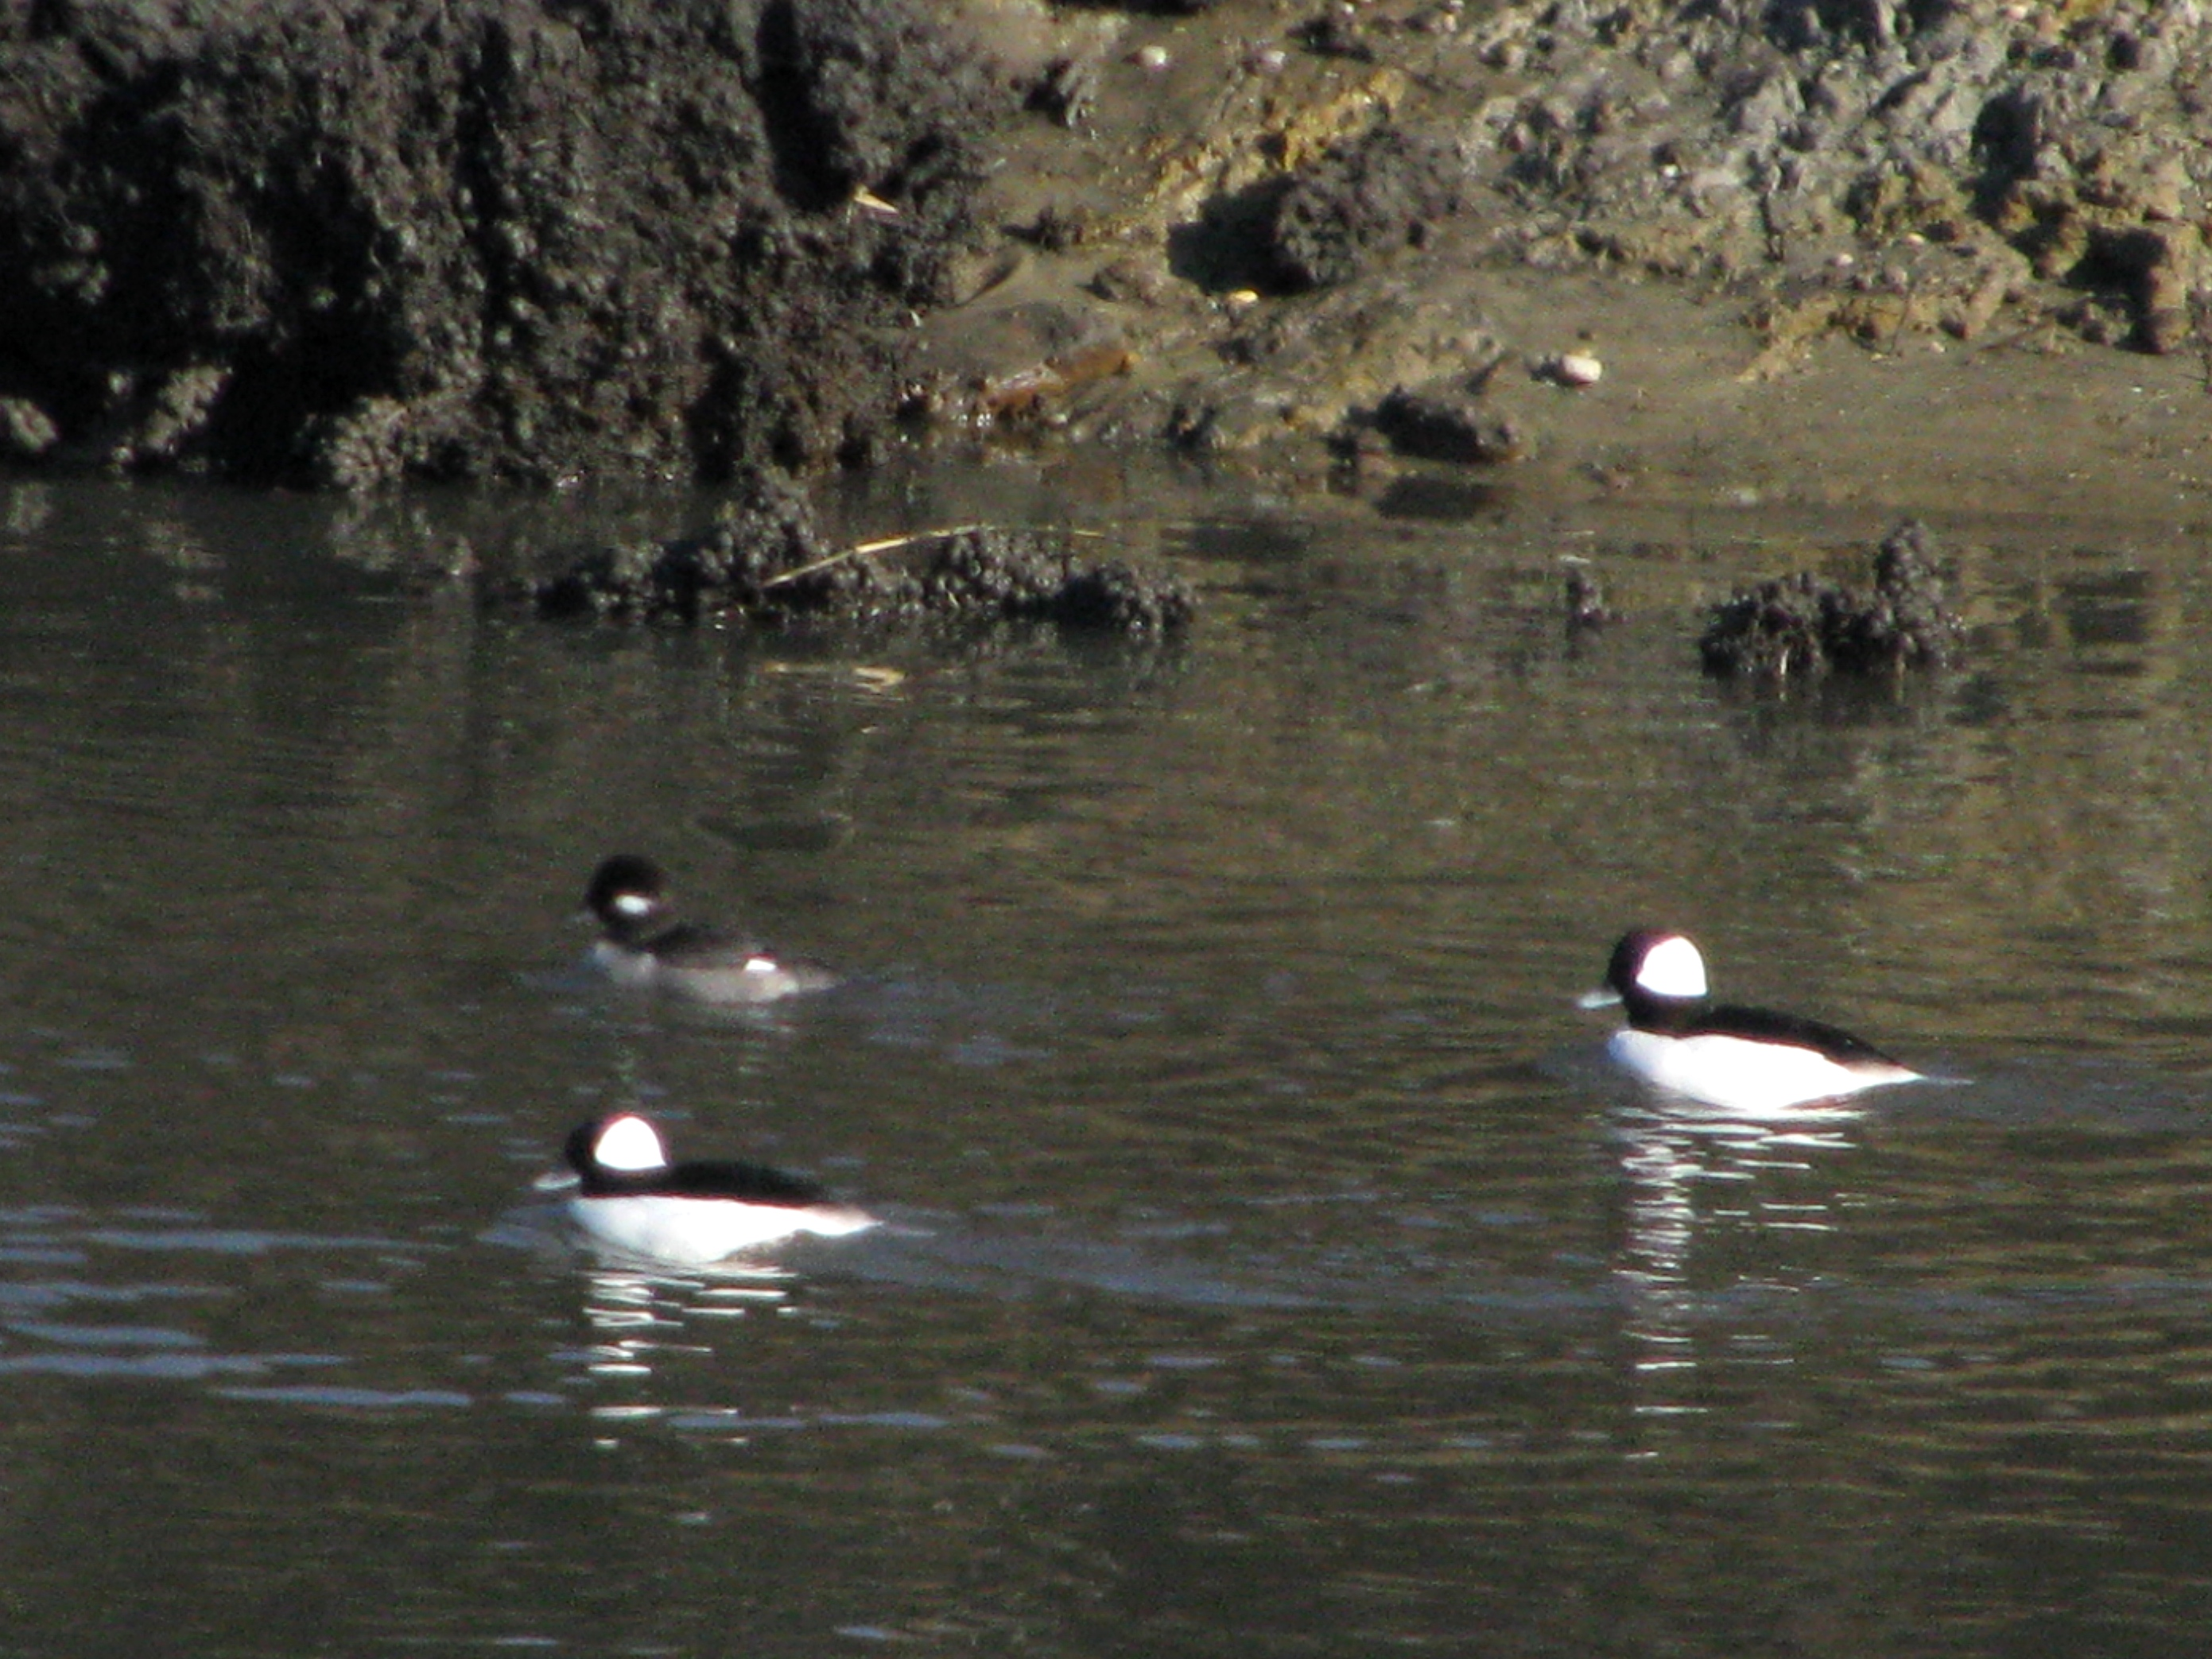 Buffleheads(two drakes and a hen) swim in a tidal creek at Bombay Hook NWR.